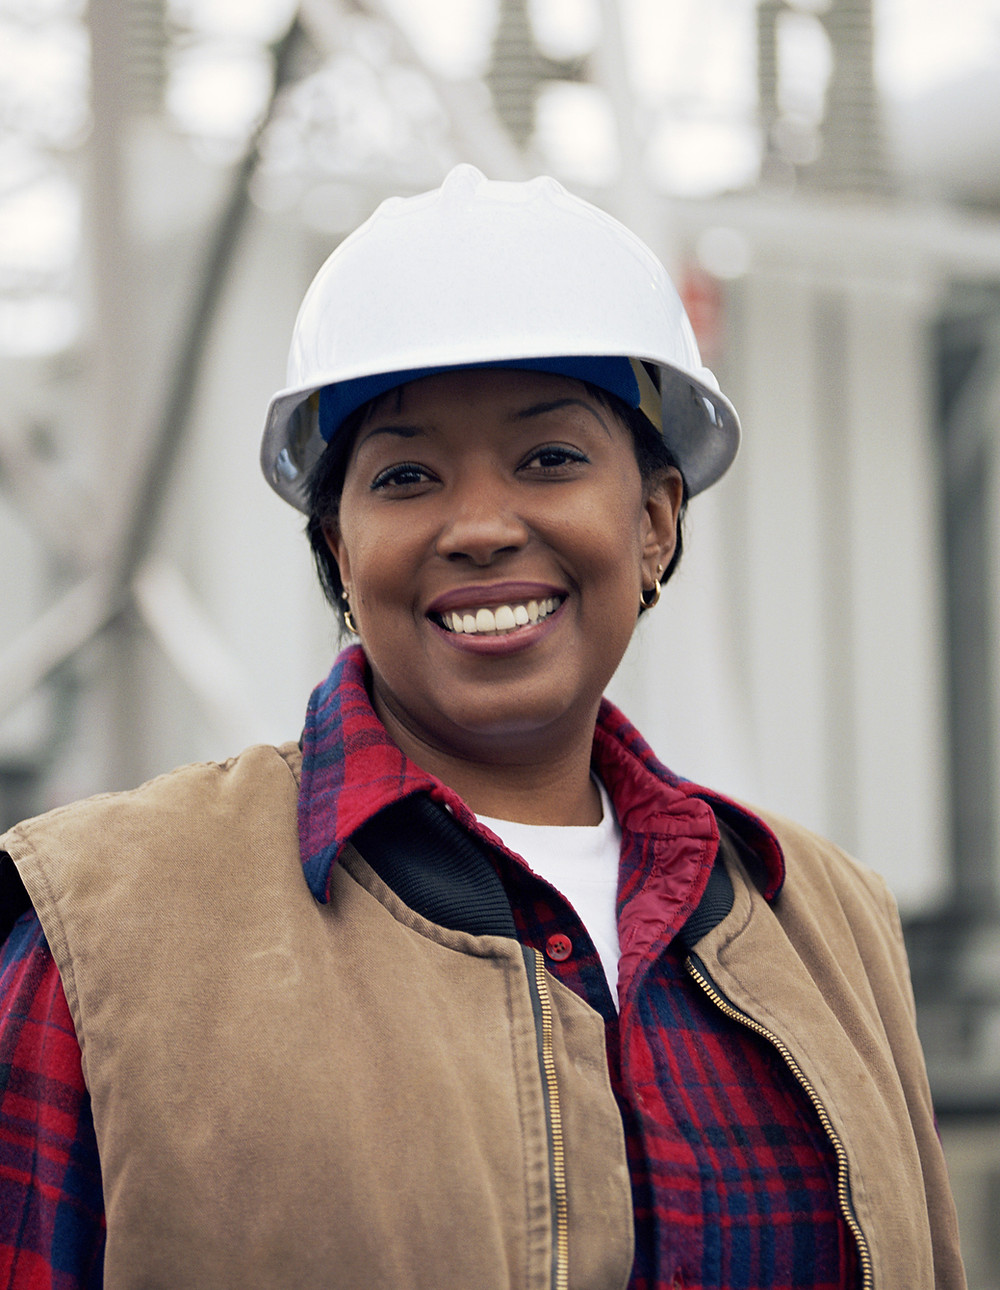 http://www.makers.com/blog/women-in-construction-industry